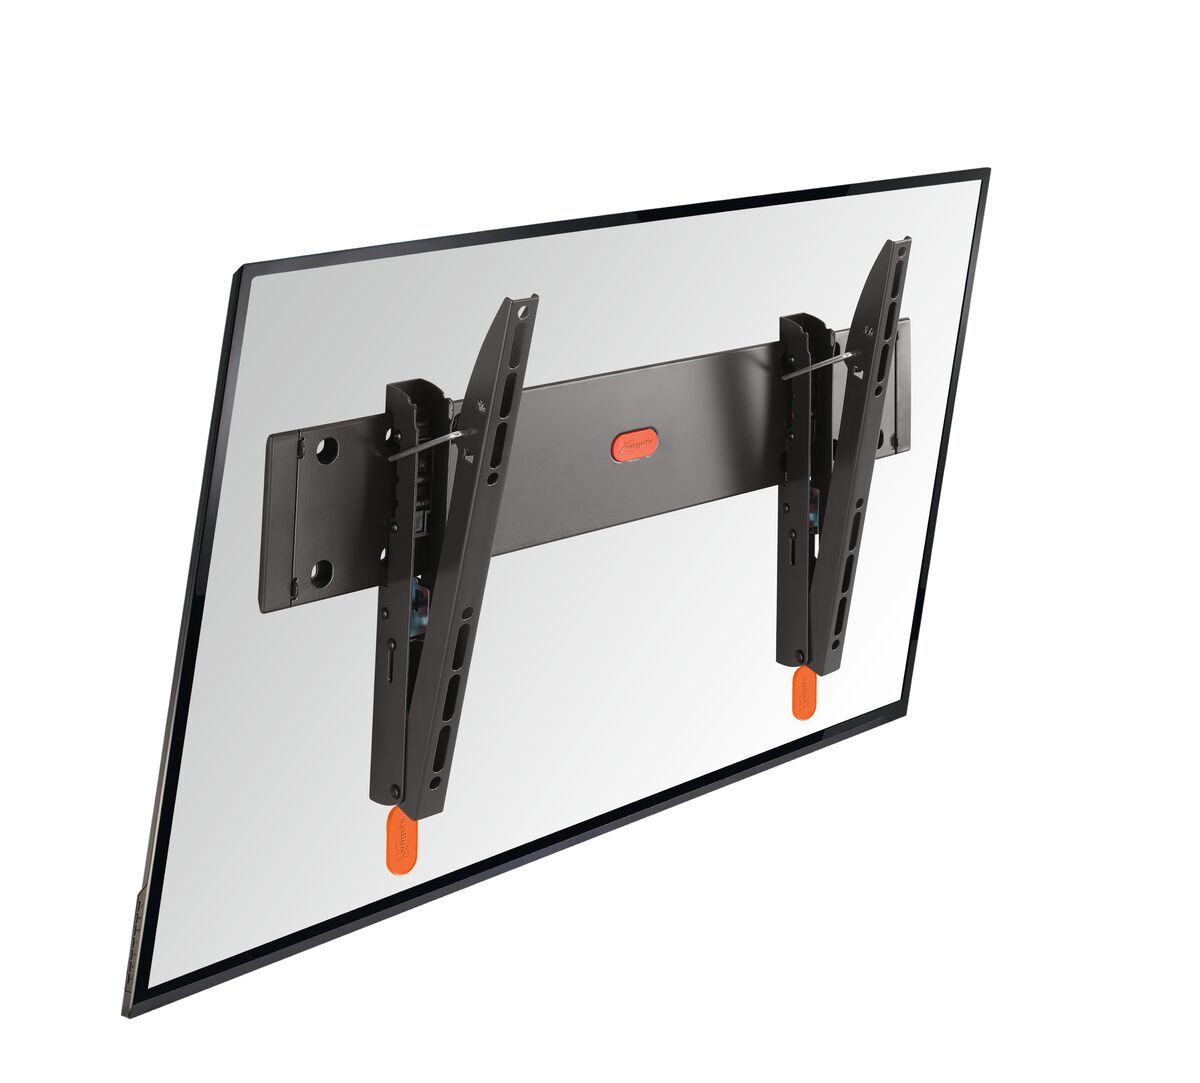 Vogel's BASE 15 M Tilting TV Wall Mount - Suitable for 32 up to 55 inch TVs up to 30 kg - Tilt up to 15° - Product